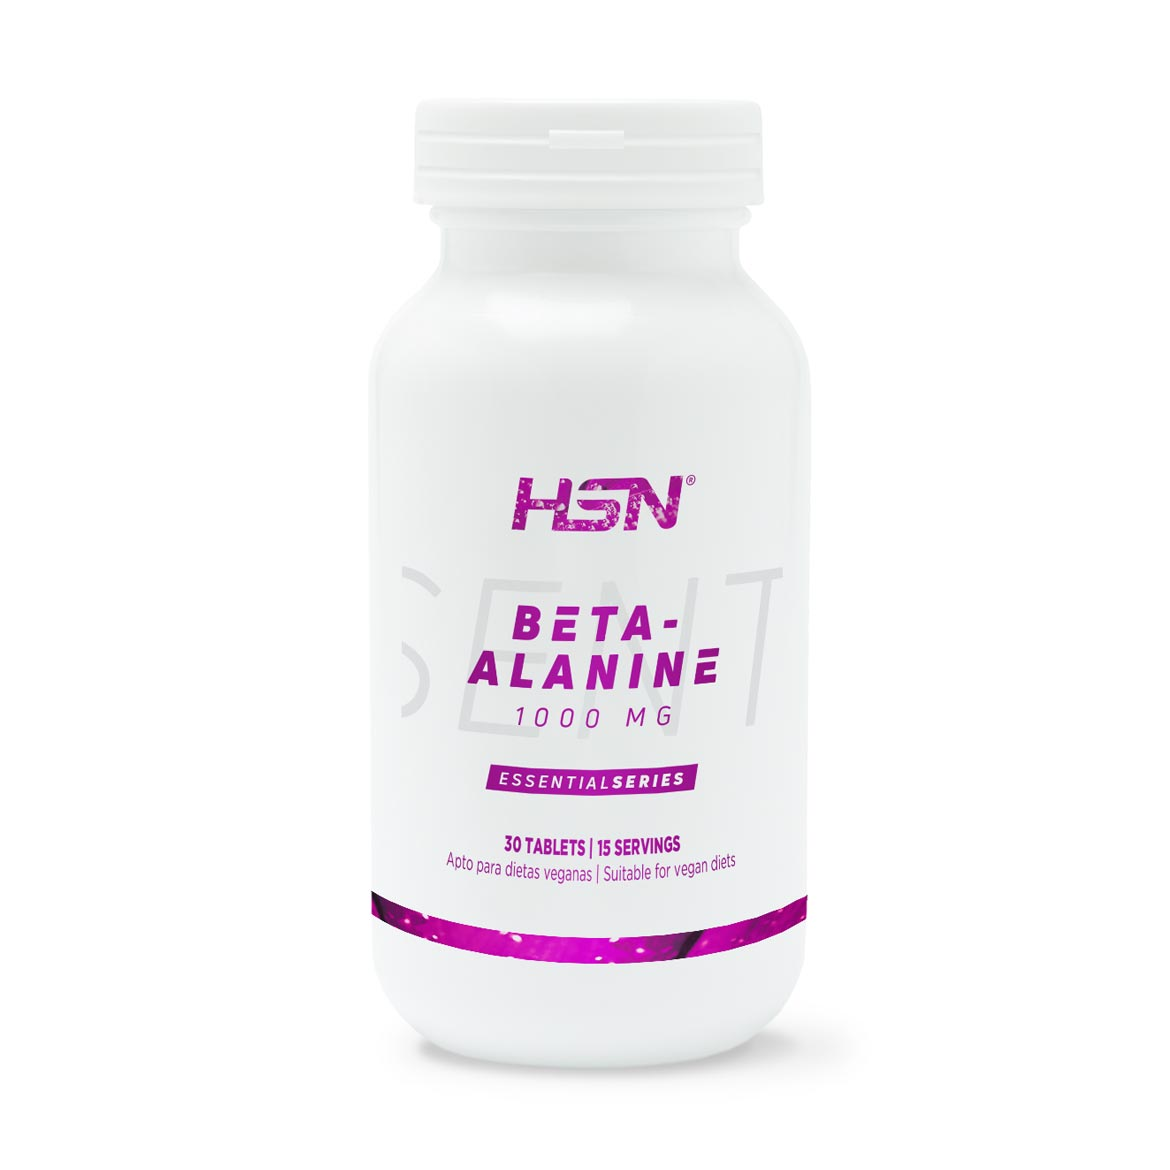 BÊTA-ALANINE 1000mg - 30 comps